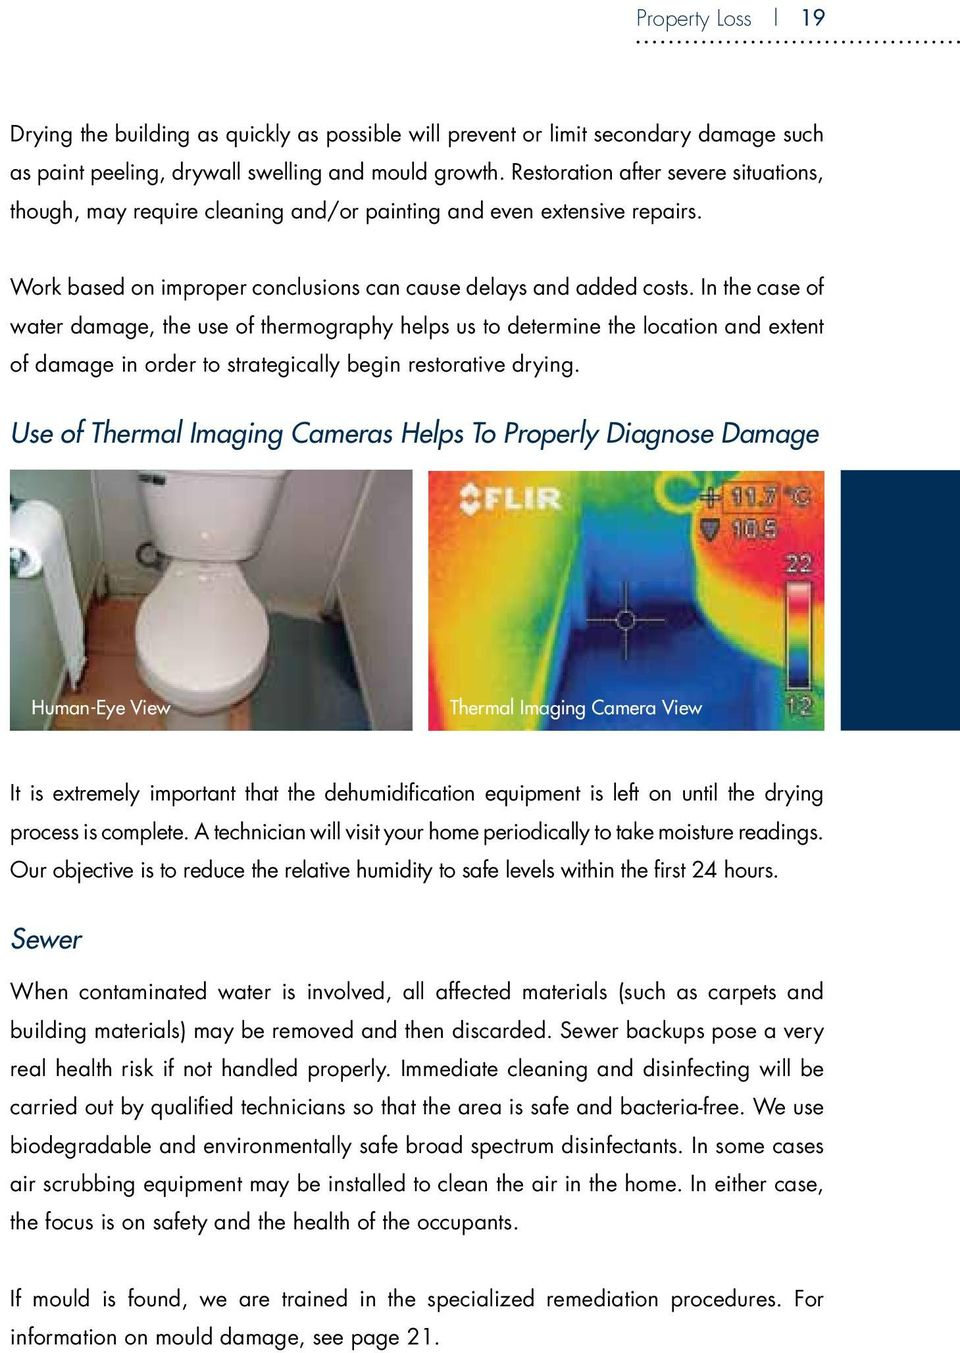 In the case of water damage, the use of thermography helps us to determine the location and extent of damage in order to strategically begin restorative drying.